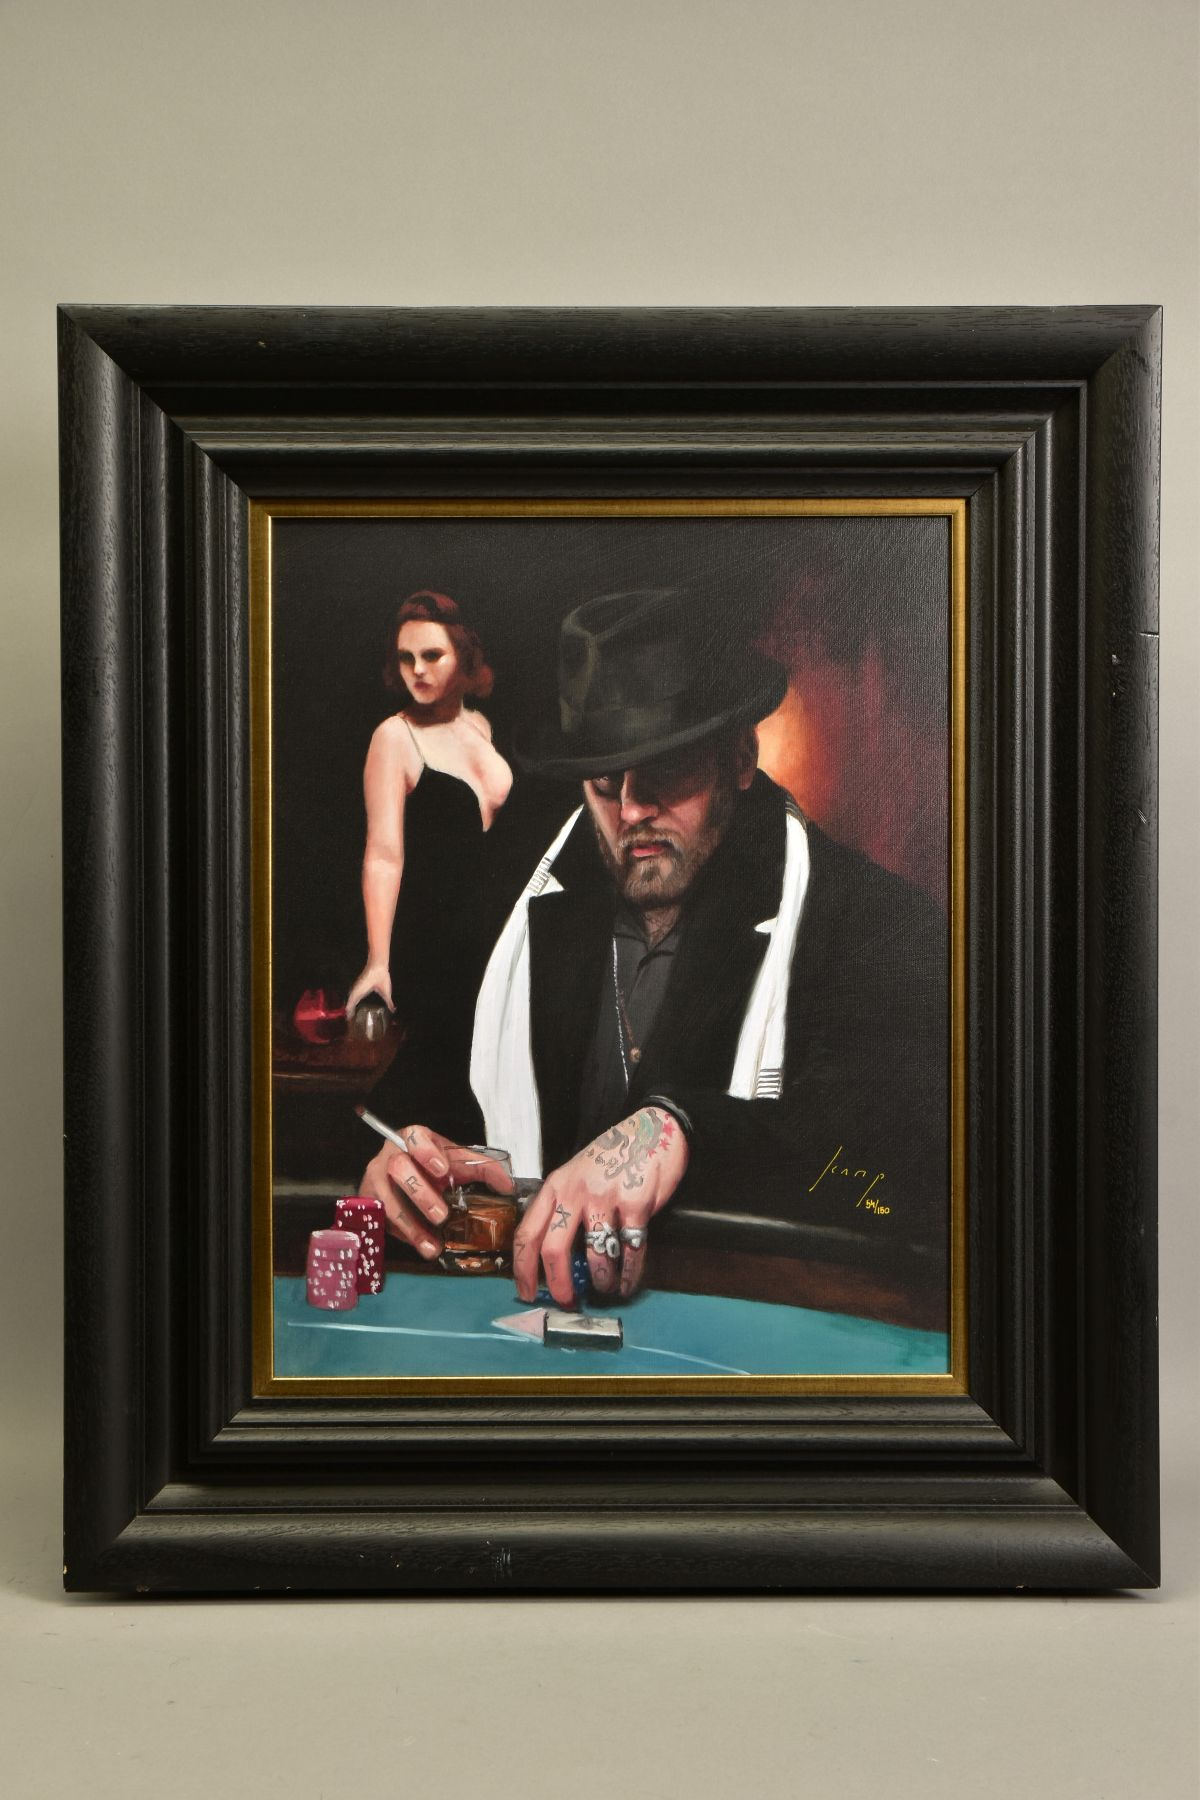 VINCENT KAMP (BRITISH CONTEMPORARY) 'NOT DONE YET' a limited edition print of a gambler in a